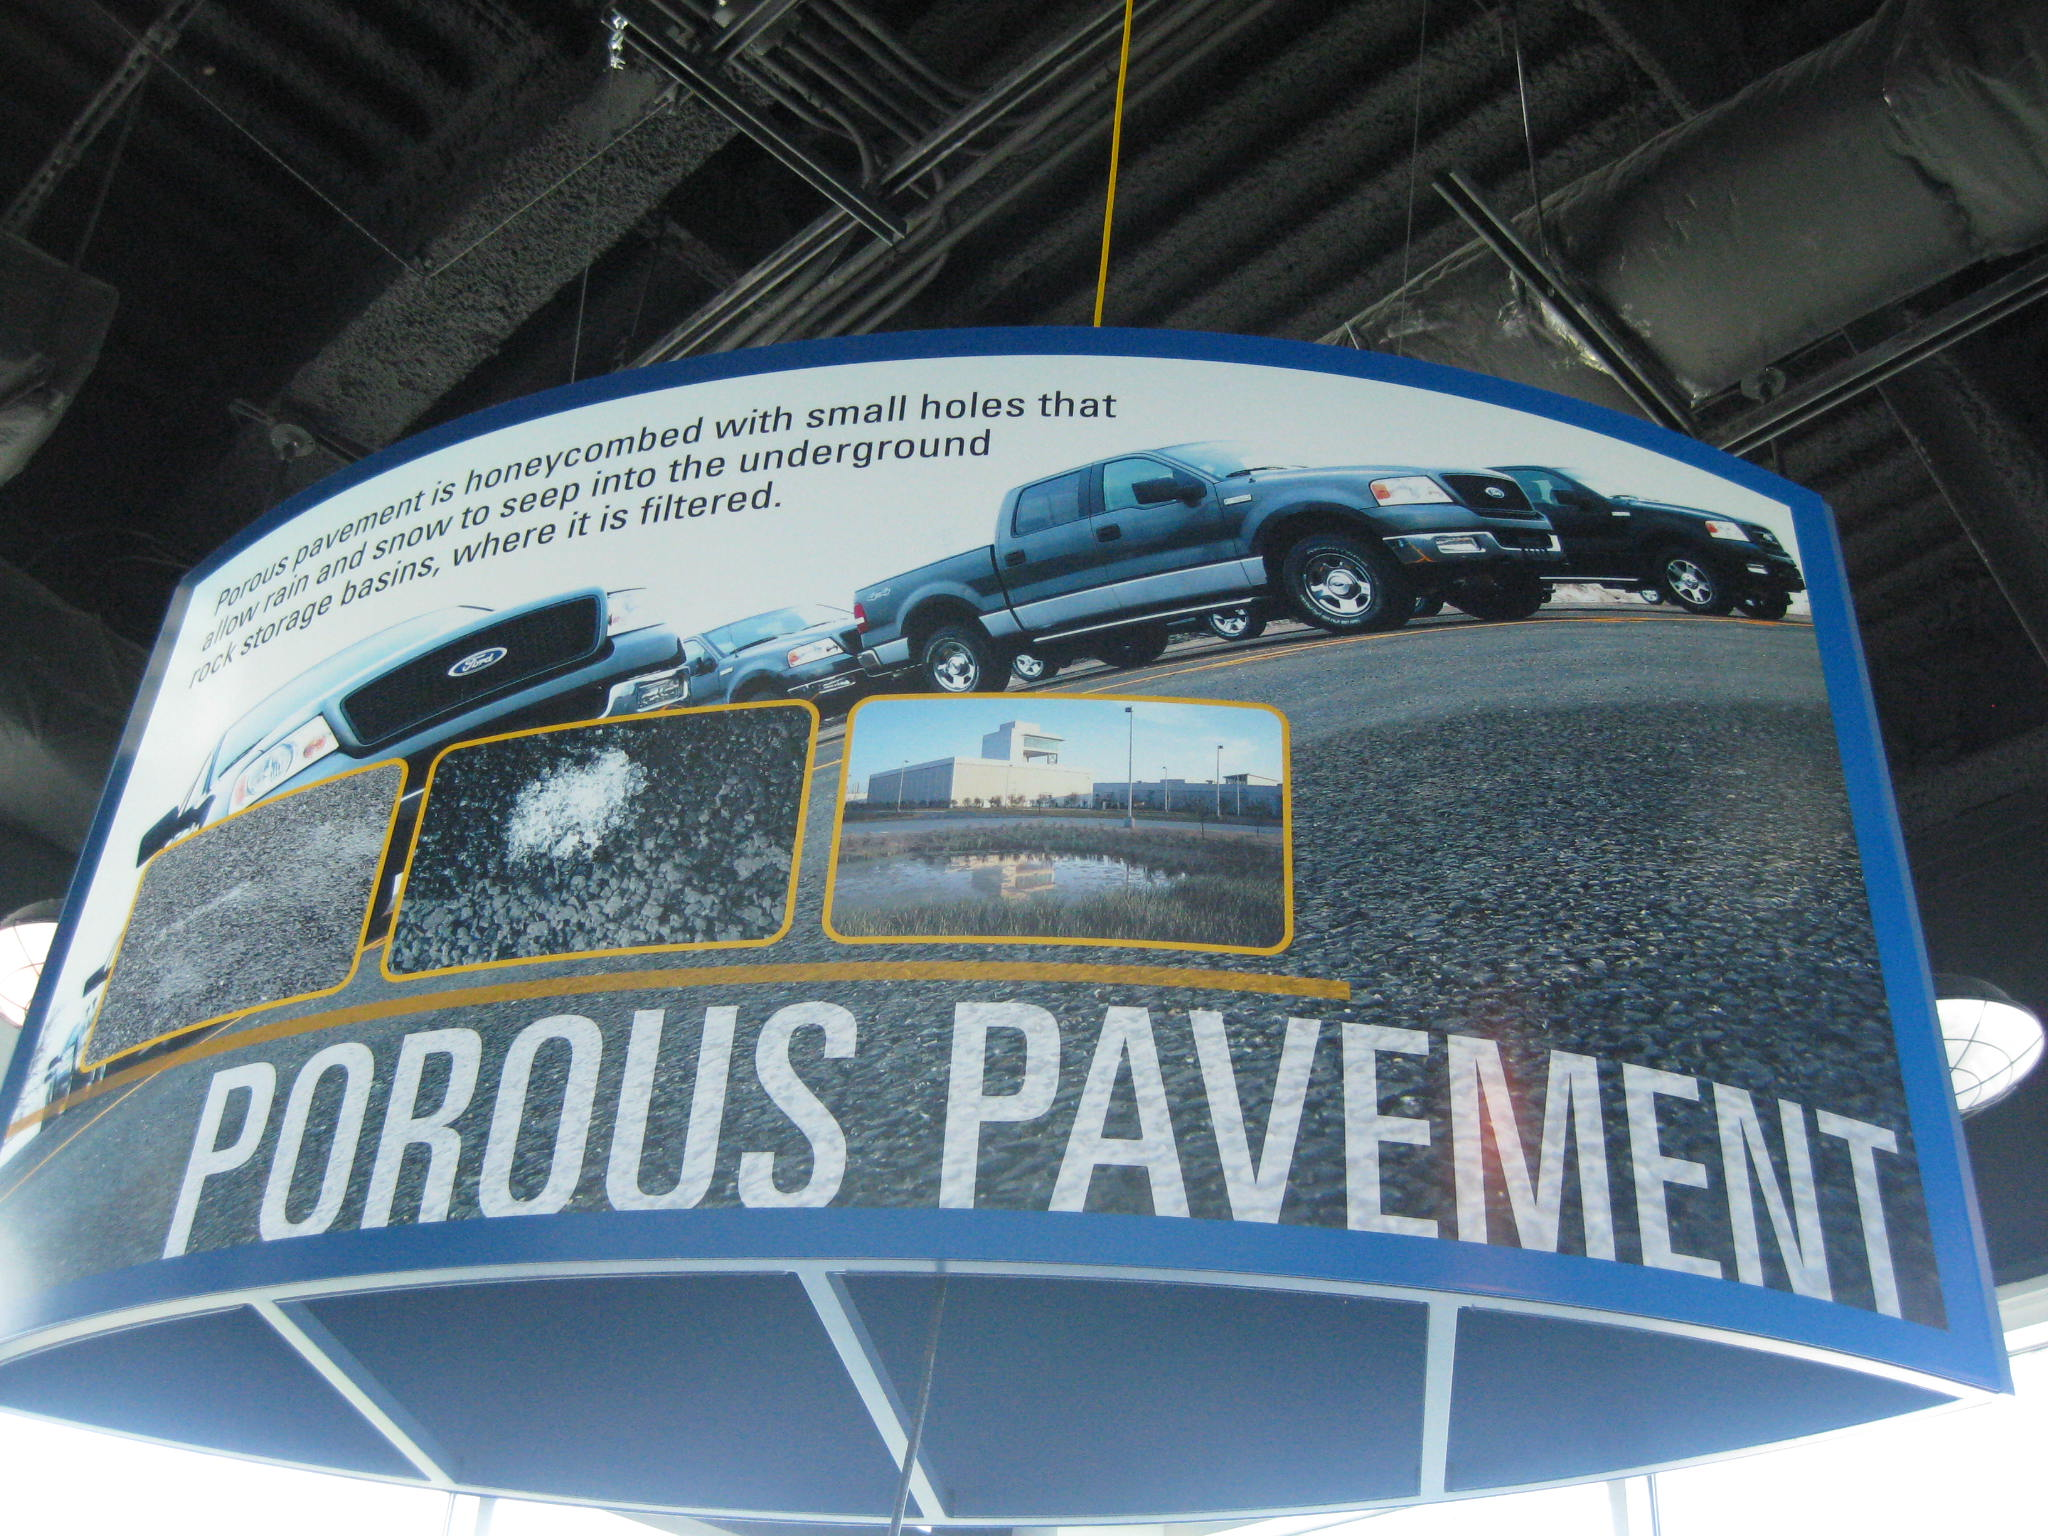 At the Ford Rogue Factory Observation Deck an exhibit demonstrates how the parking lots are environmentally friendly.